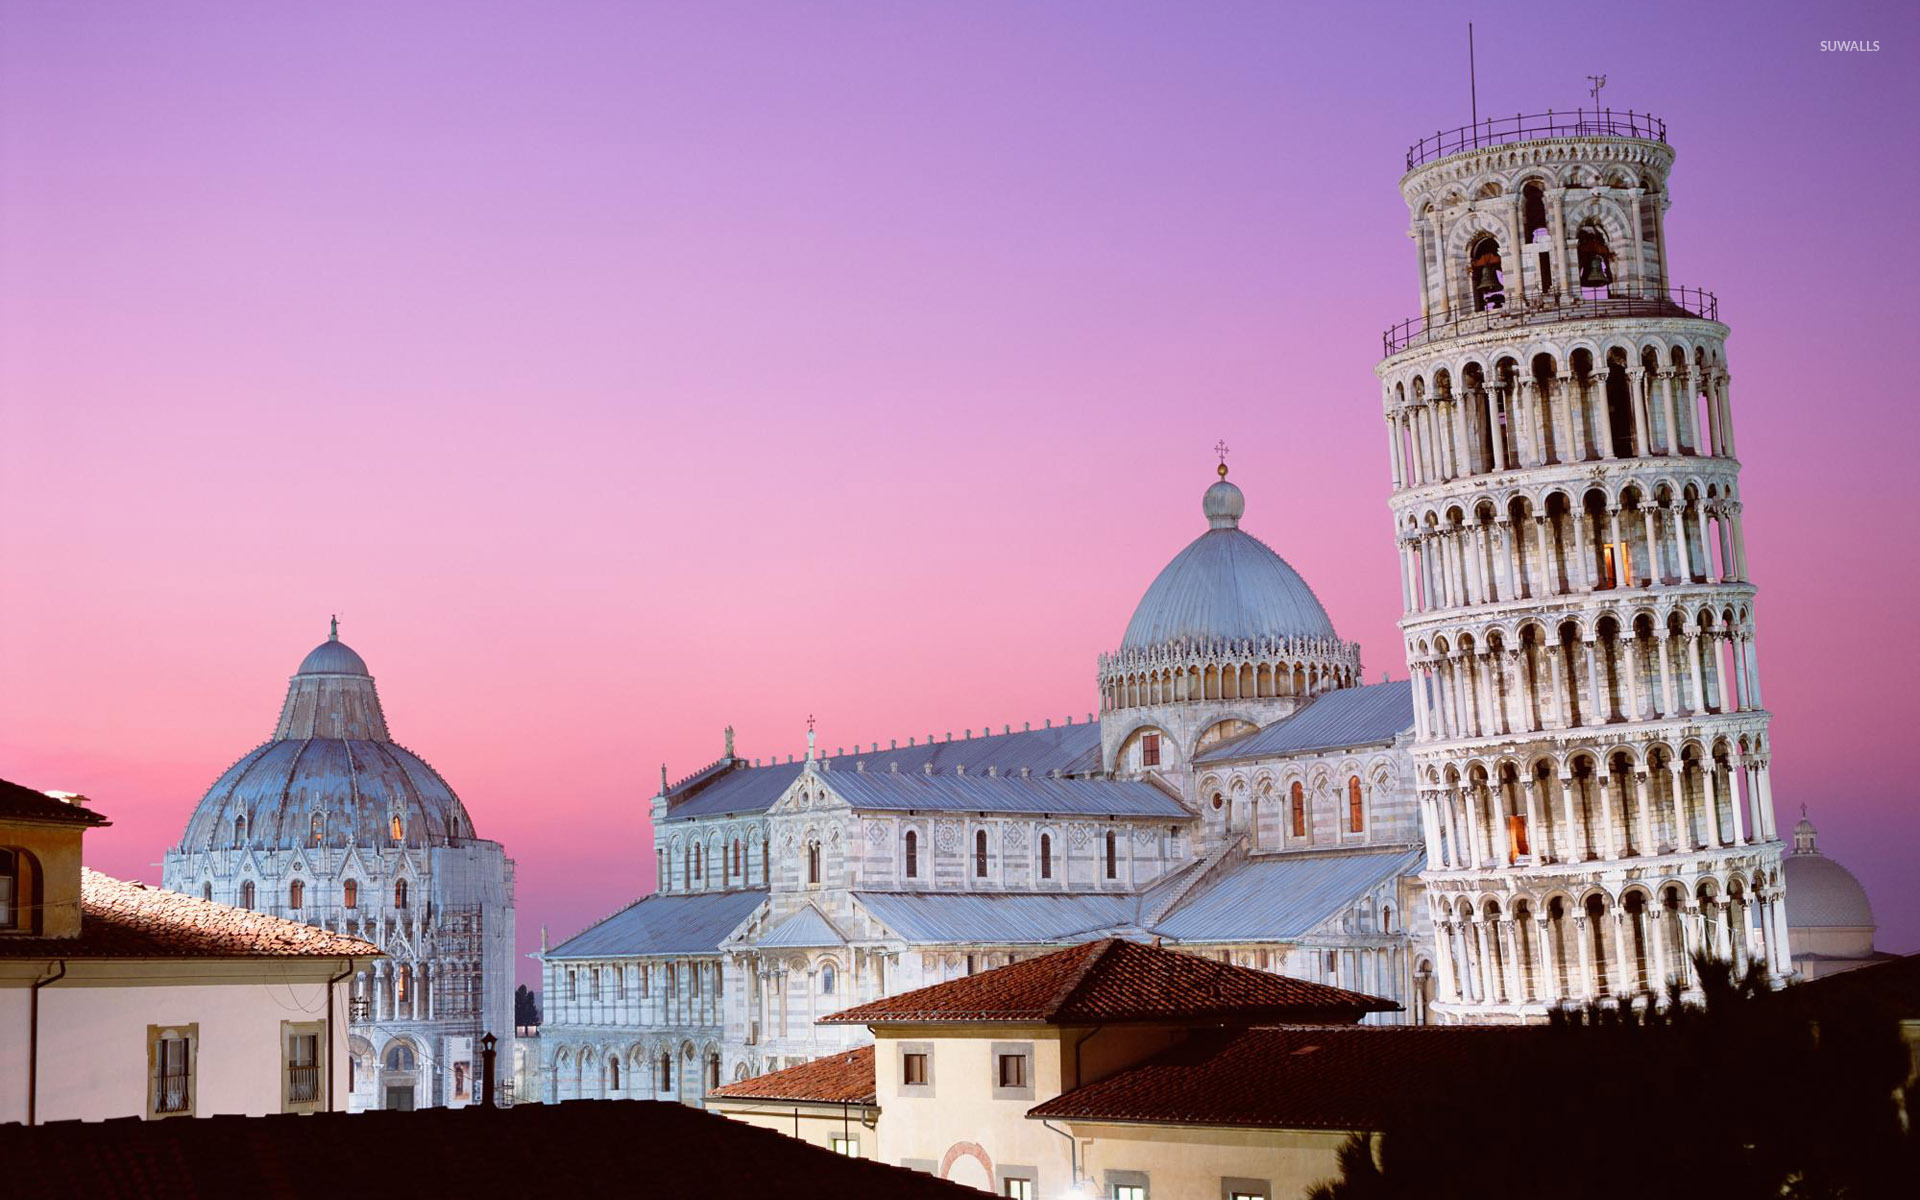 The Leaning Tower Of Pisa And The Pisa Cathedral 3559 1920×1200 Wallpaper